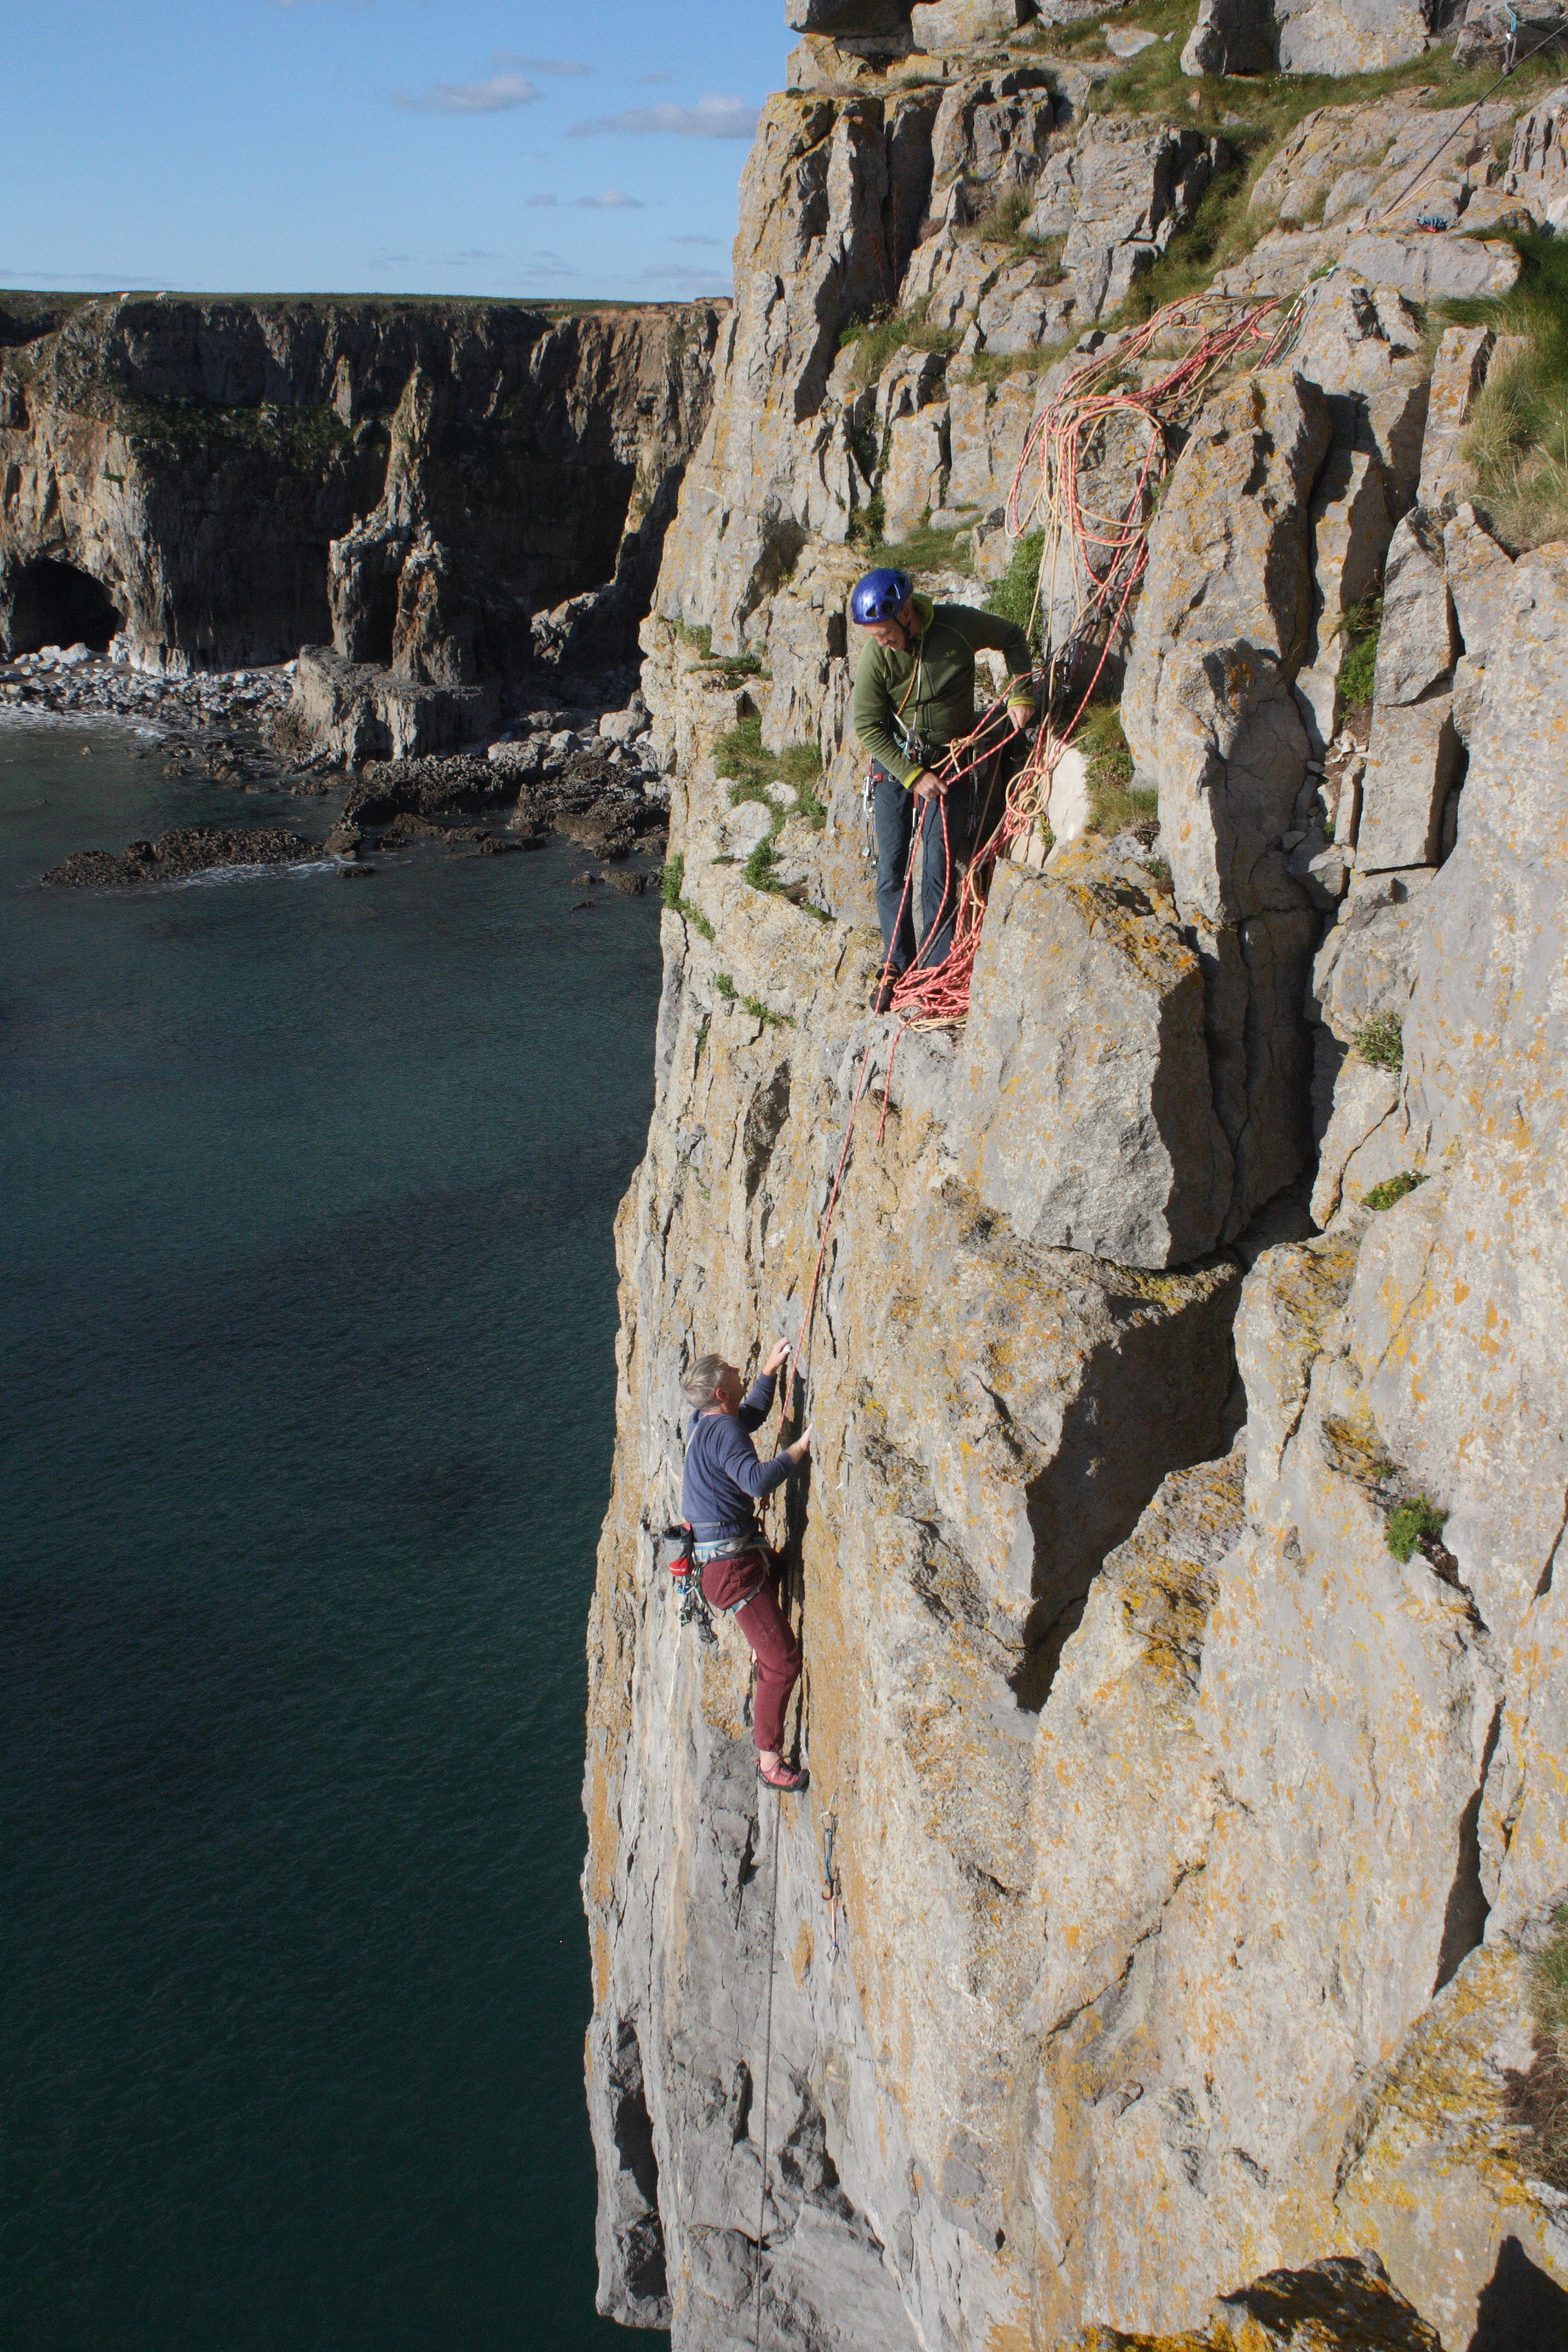 Opinion pembrokeshire swinging couple excellent message